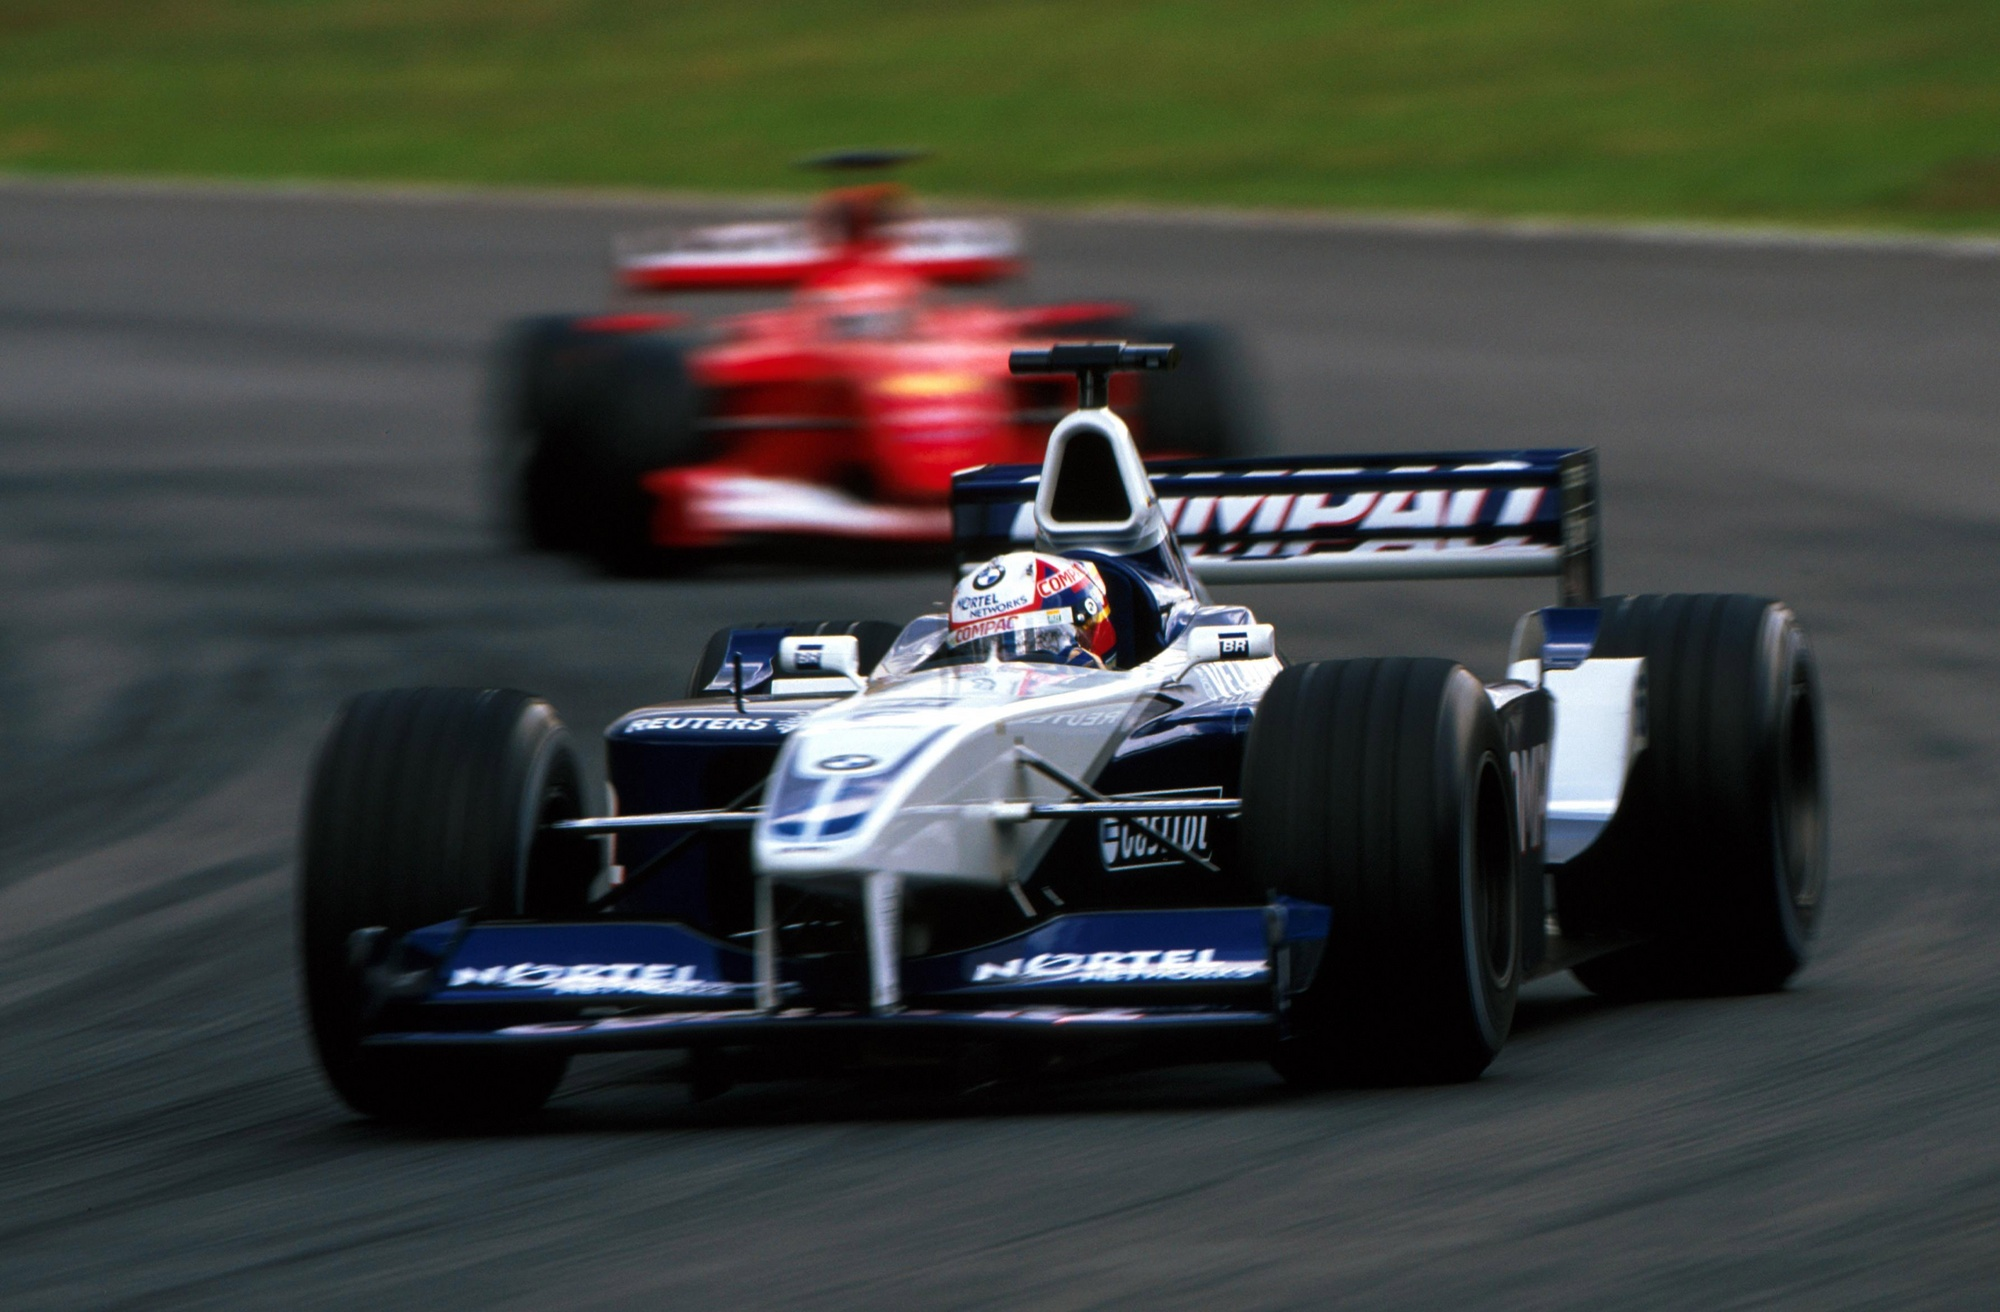 Williams fw23 photo - 2